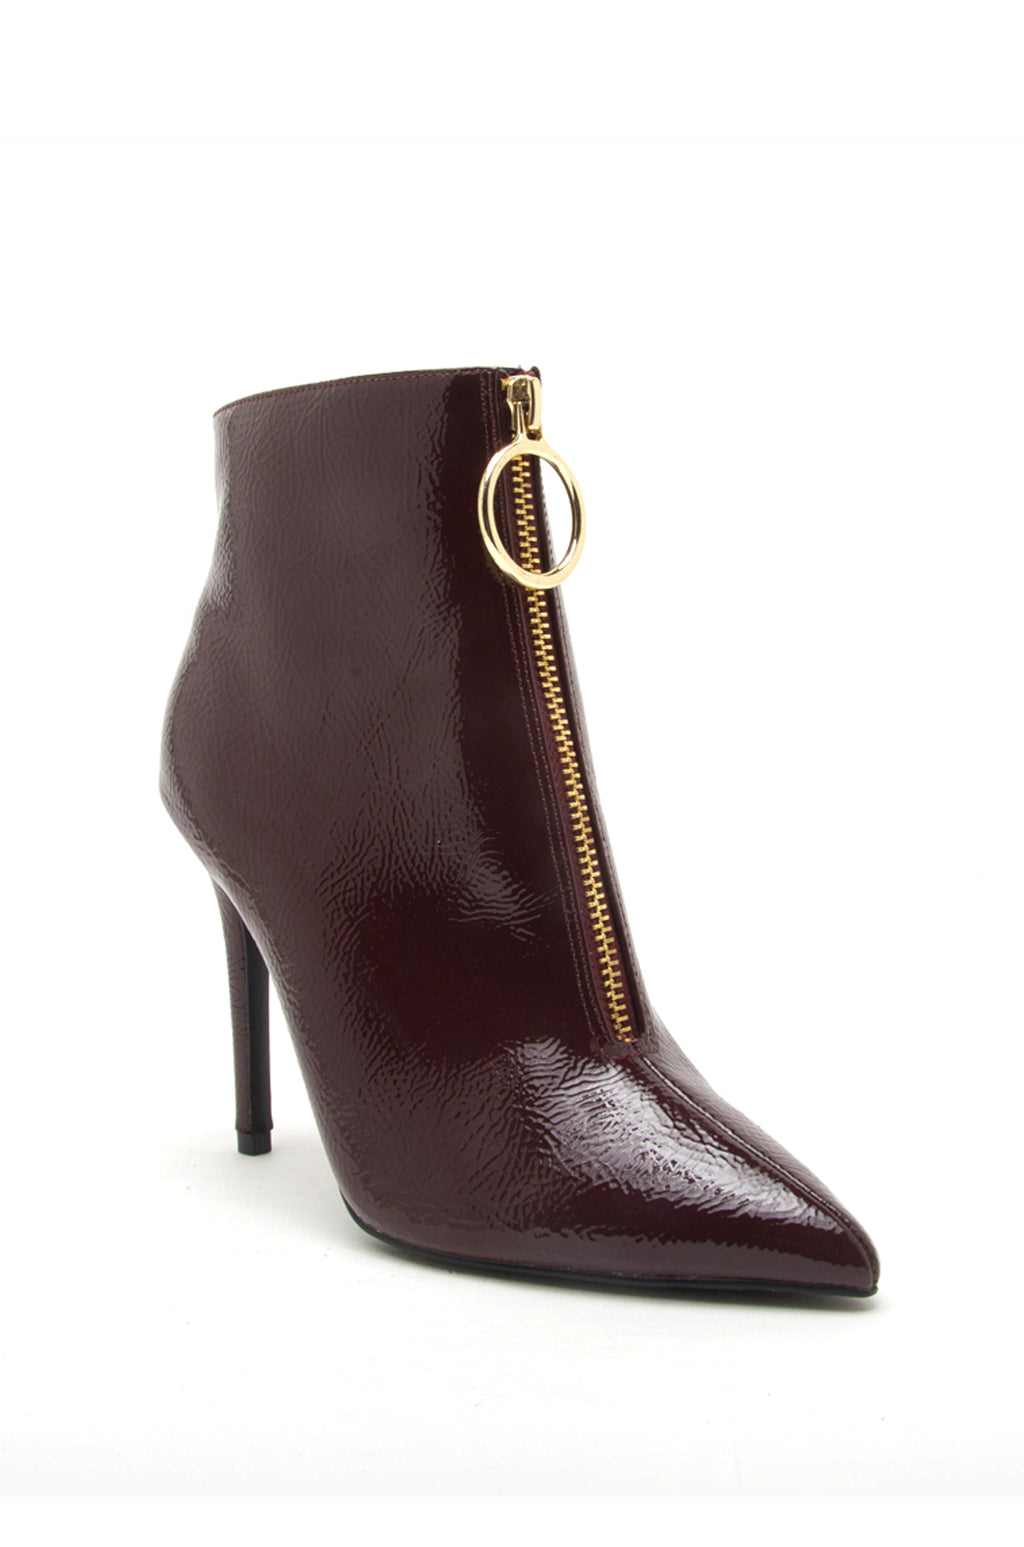 Irresistible - Burgundy O Ring Zipper Booties